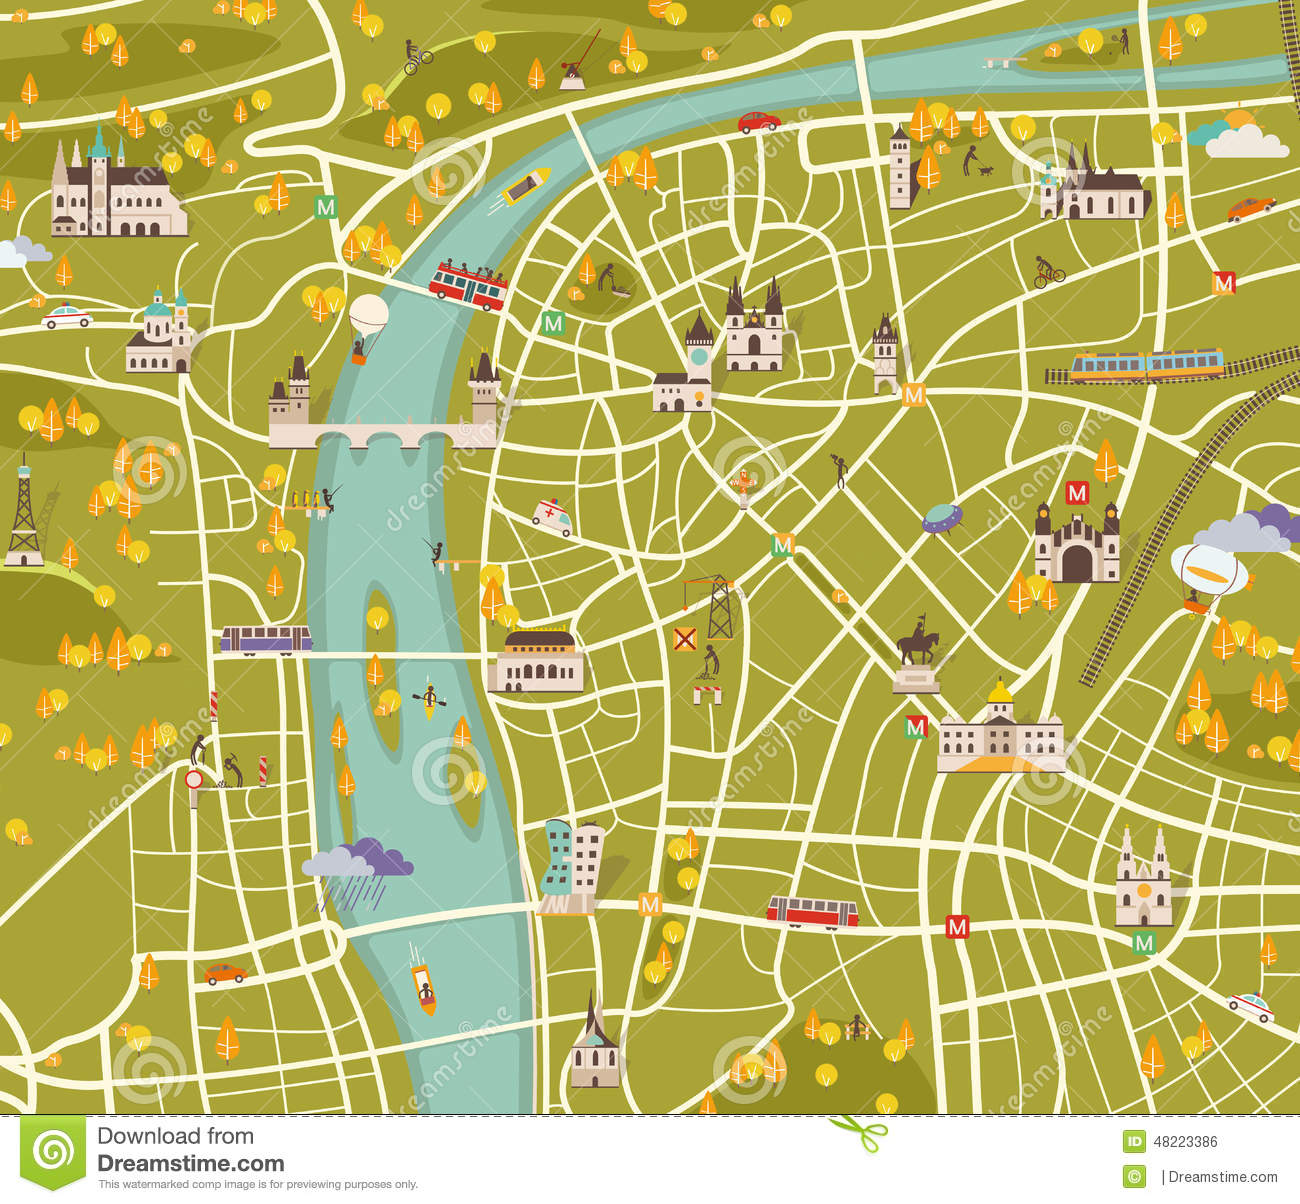 Http Thumbs Dreamstime Com Z Map Prague Vector Graphics City 48223386 Jpg Grafika